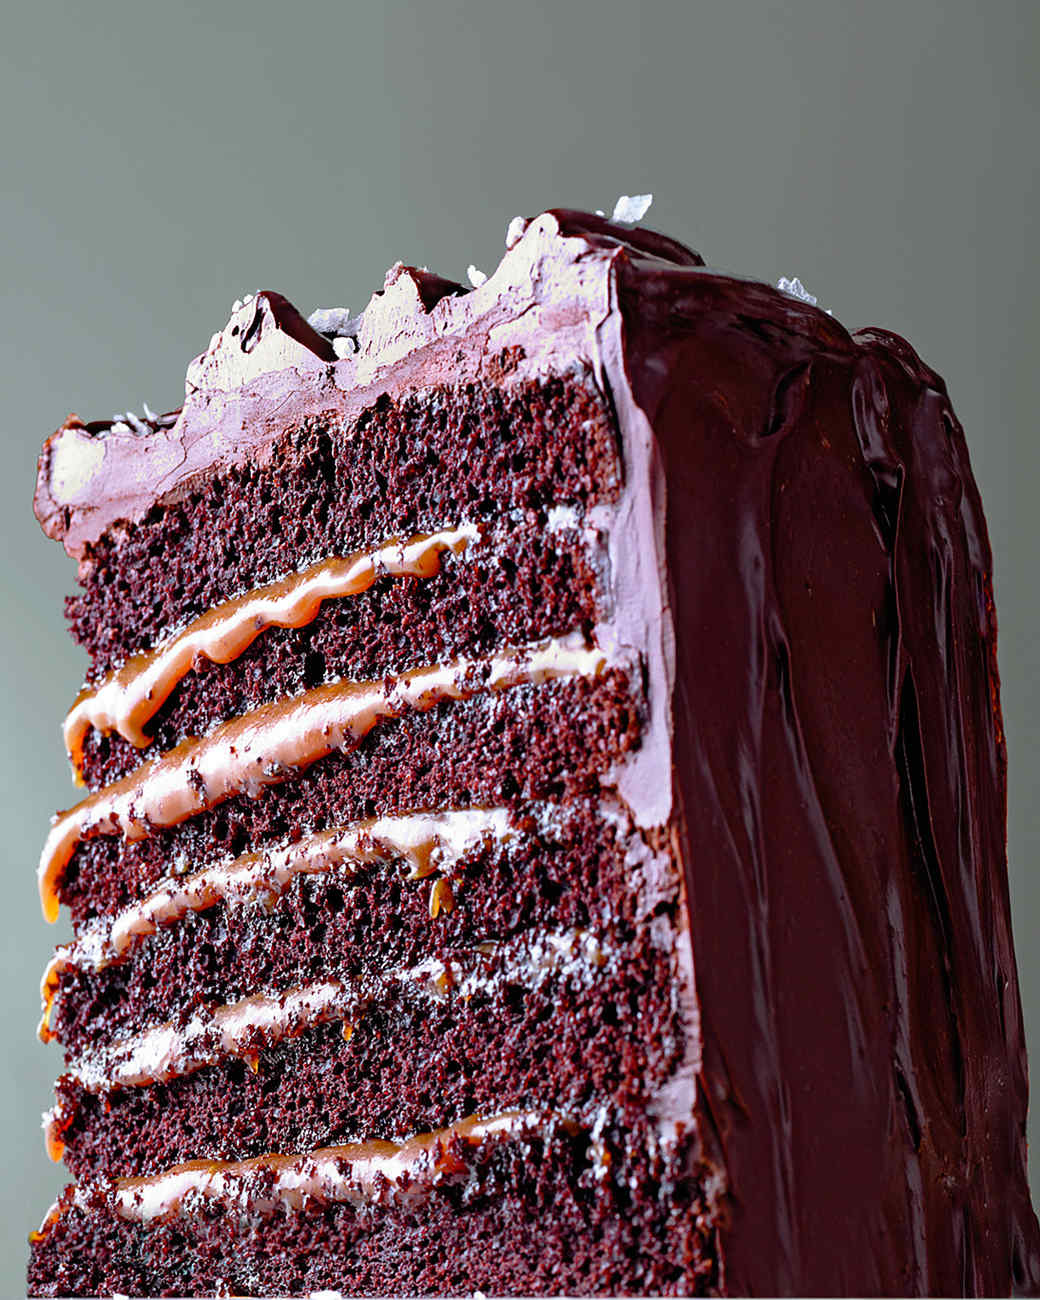 Caramel Six-Layer Chocolate Cake